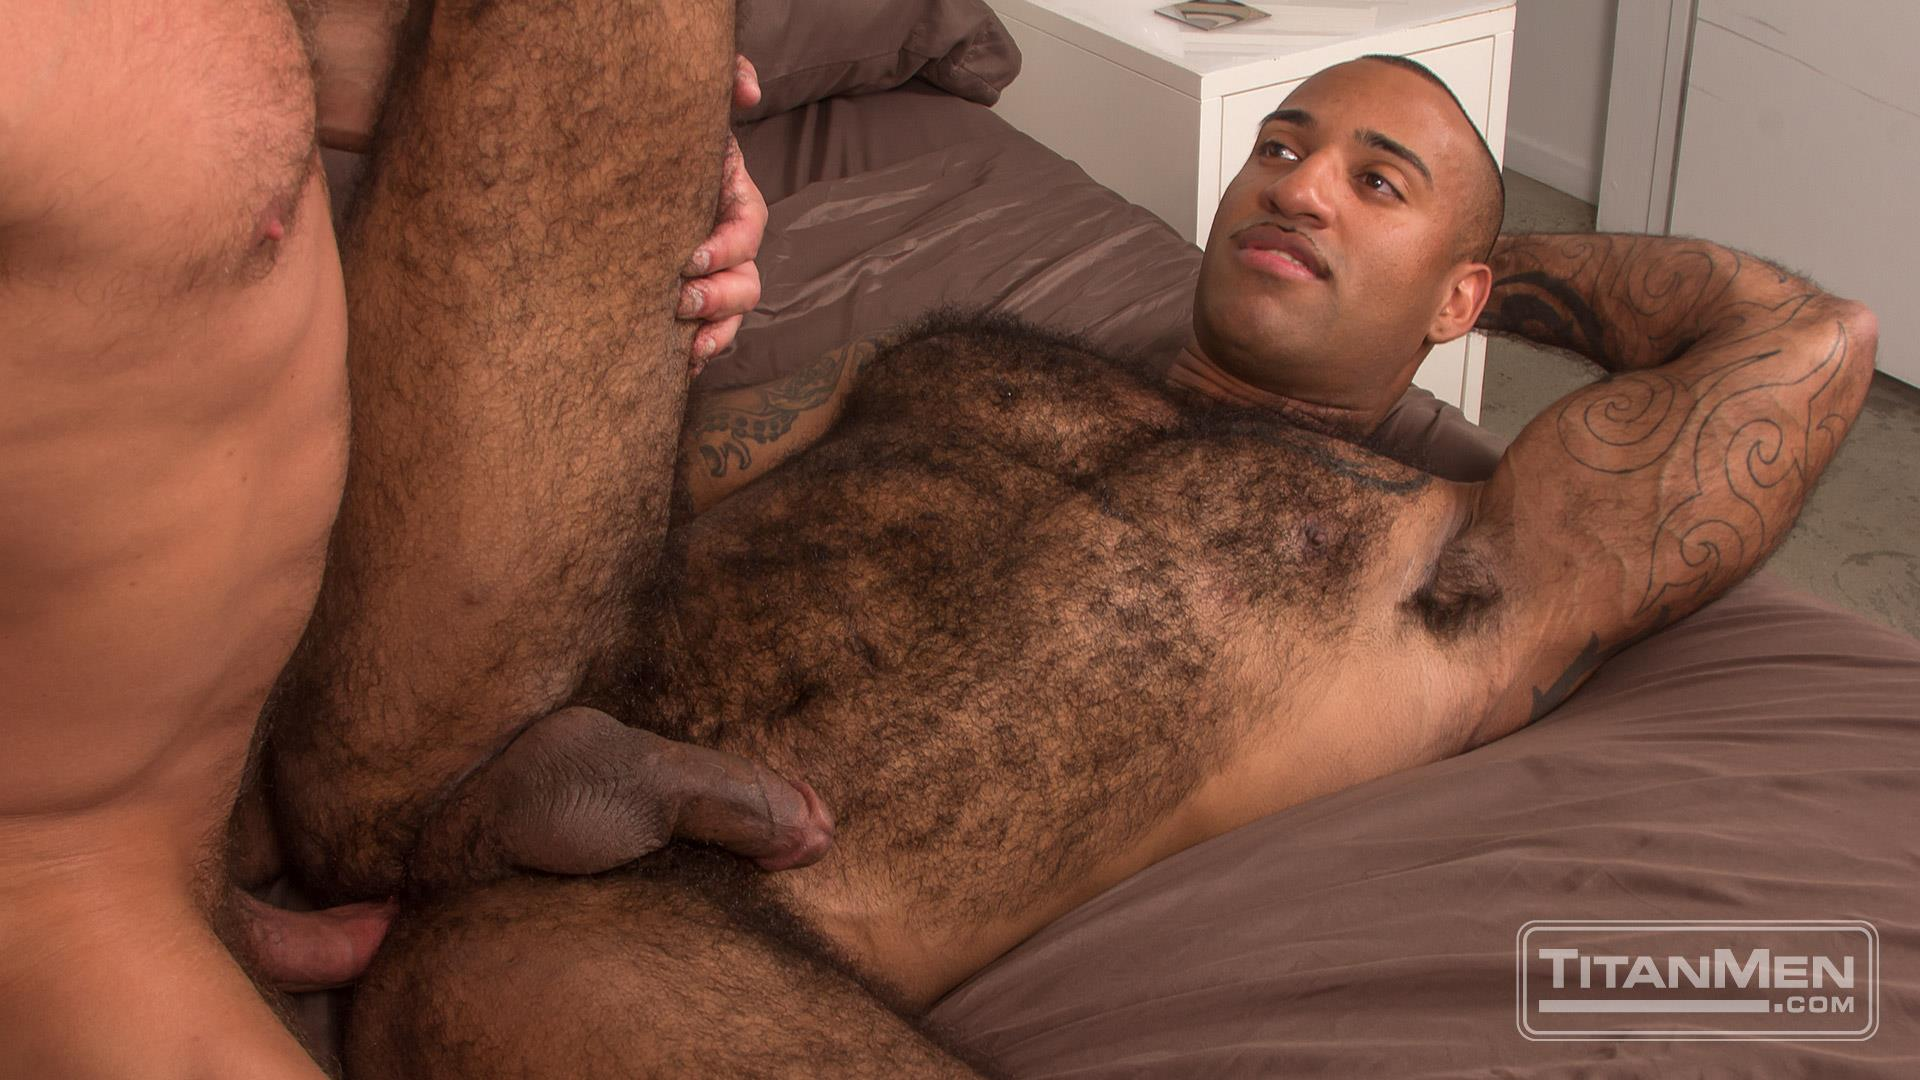 ebony twink fucked by white cock